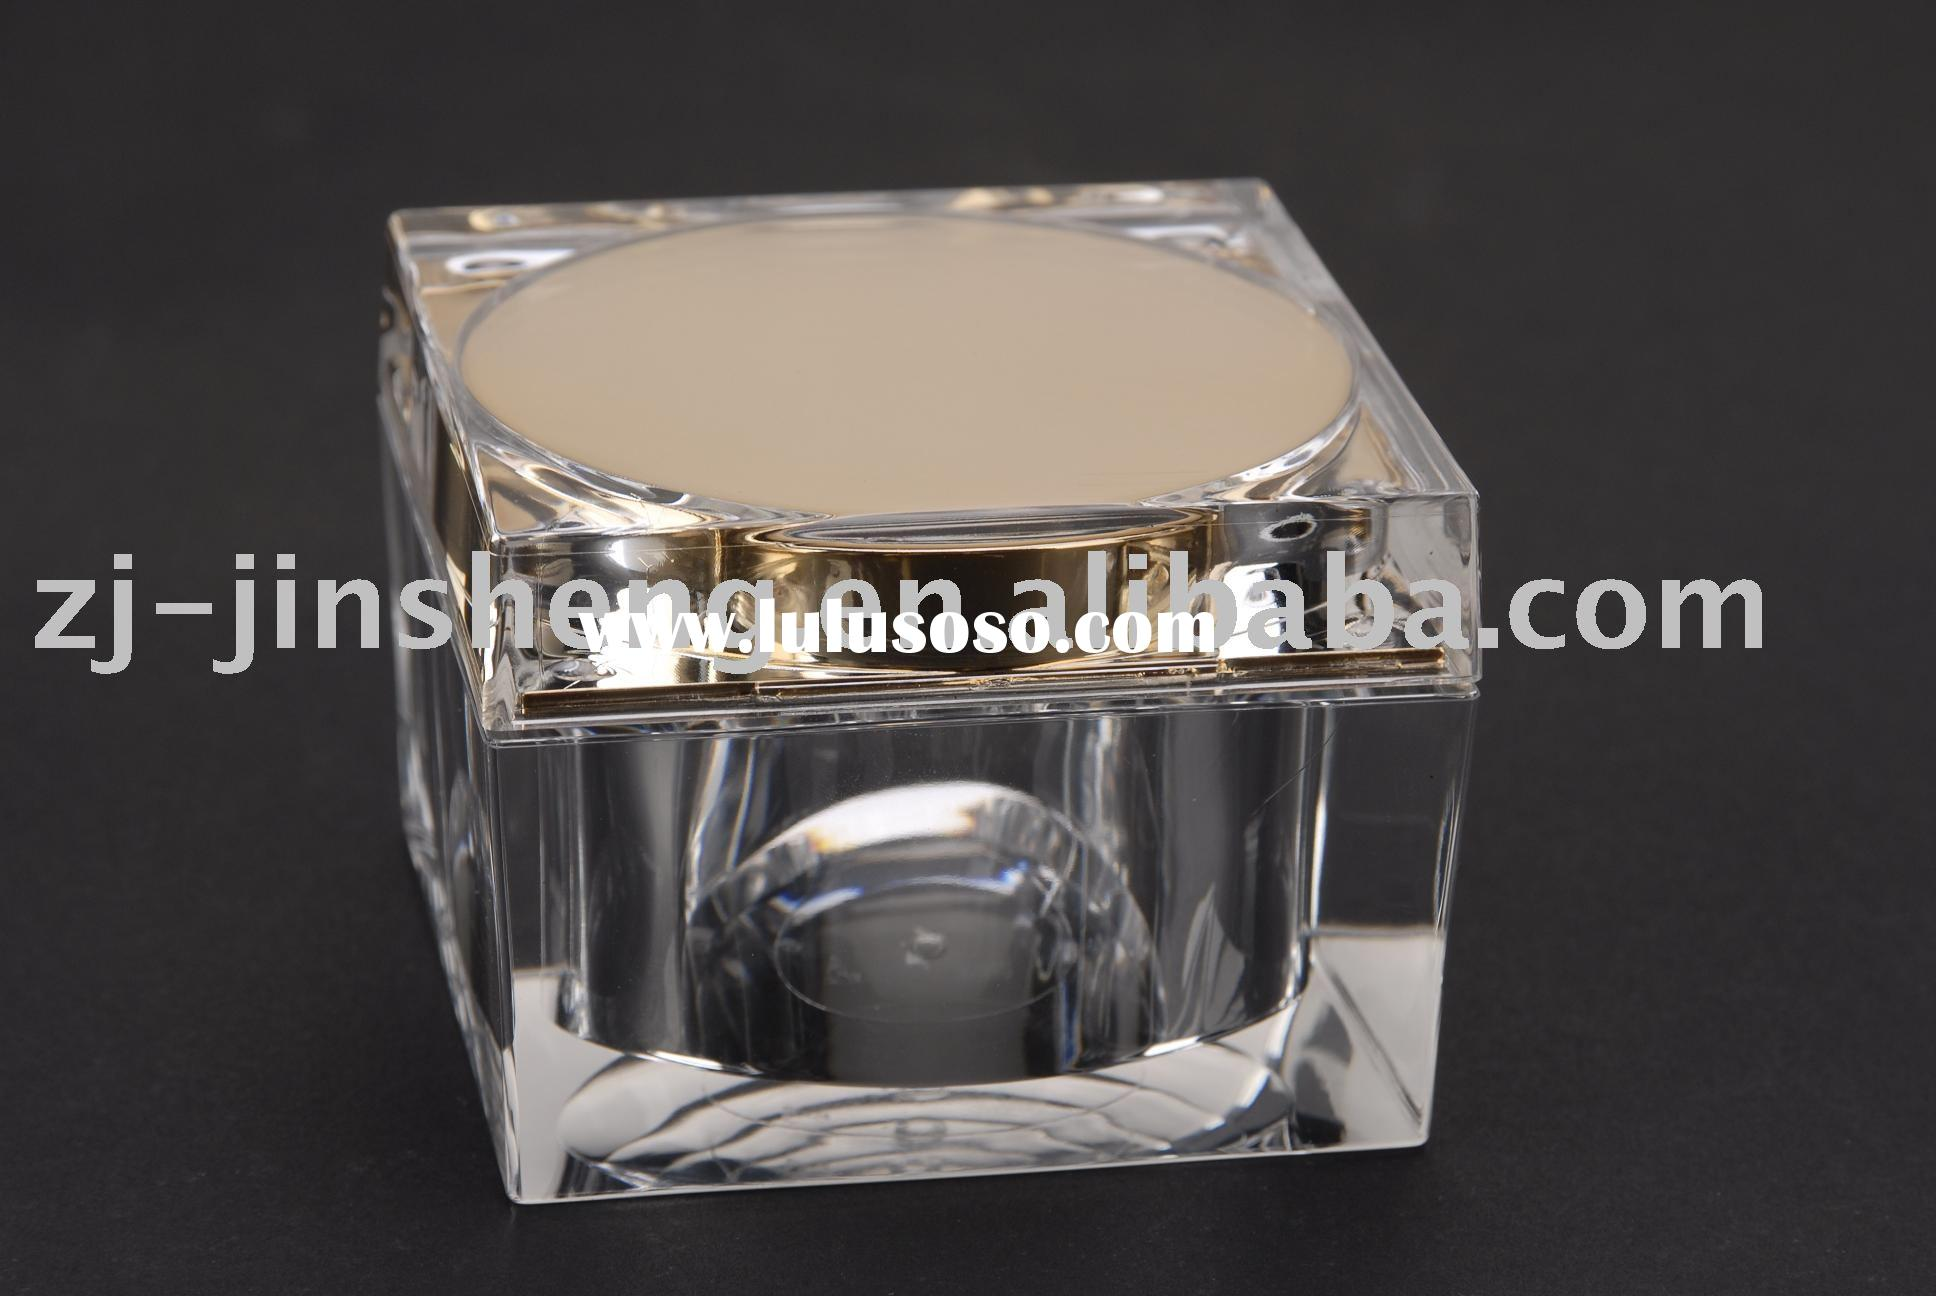 cosmetic jars wholesale uk, cosmetic jars wholesale uk ...